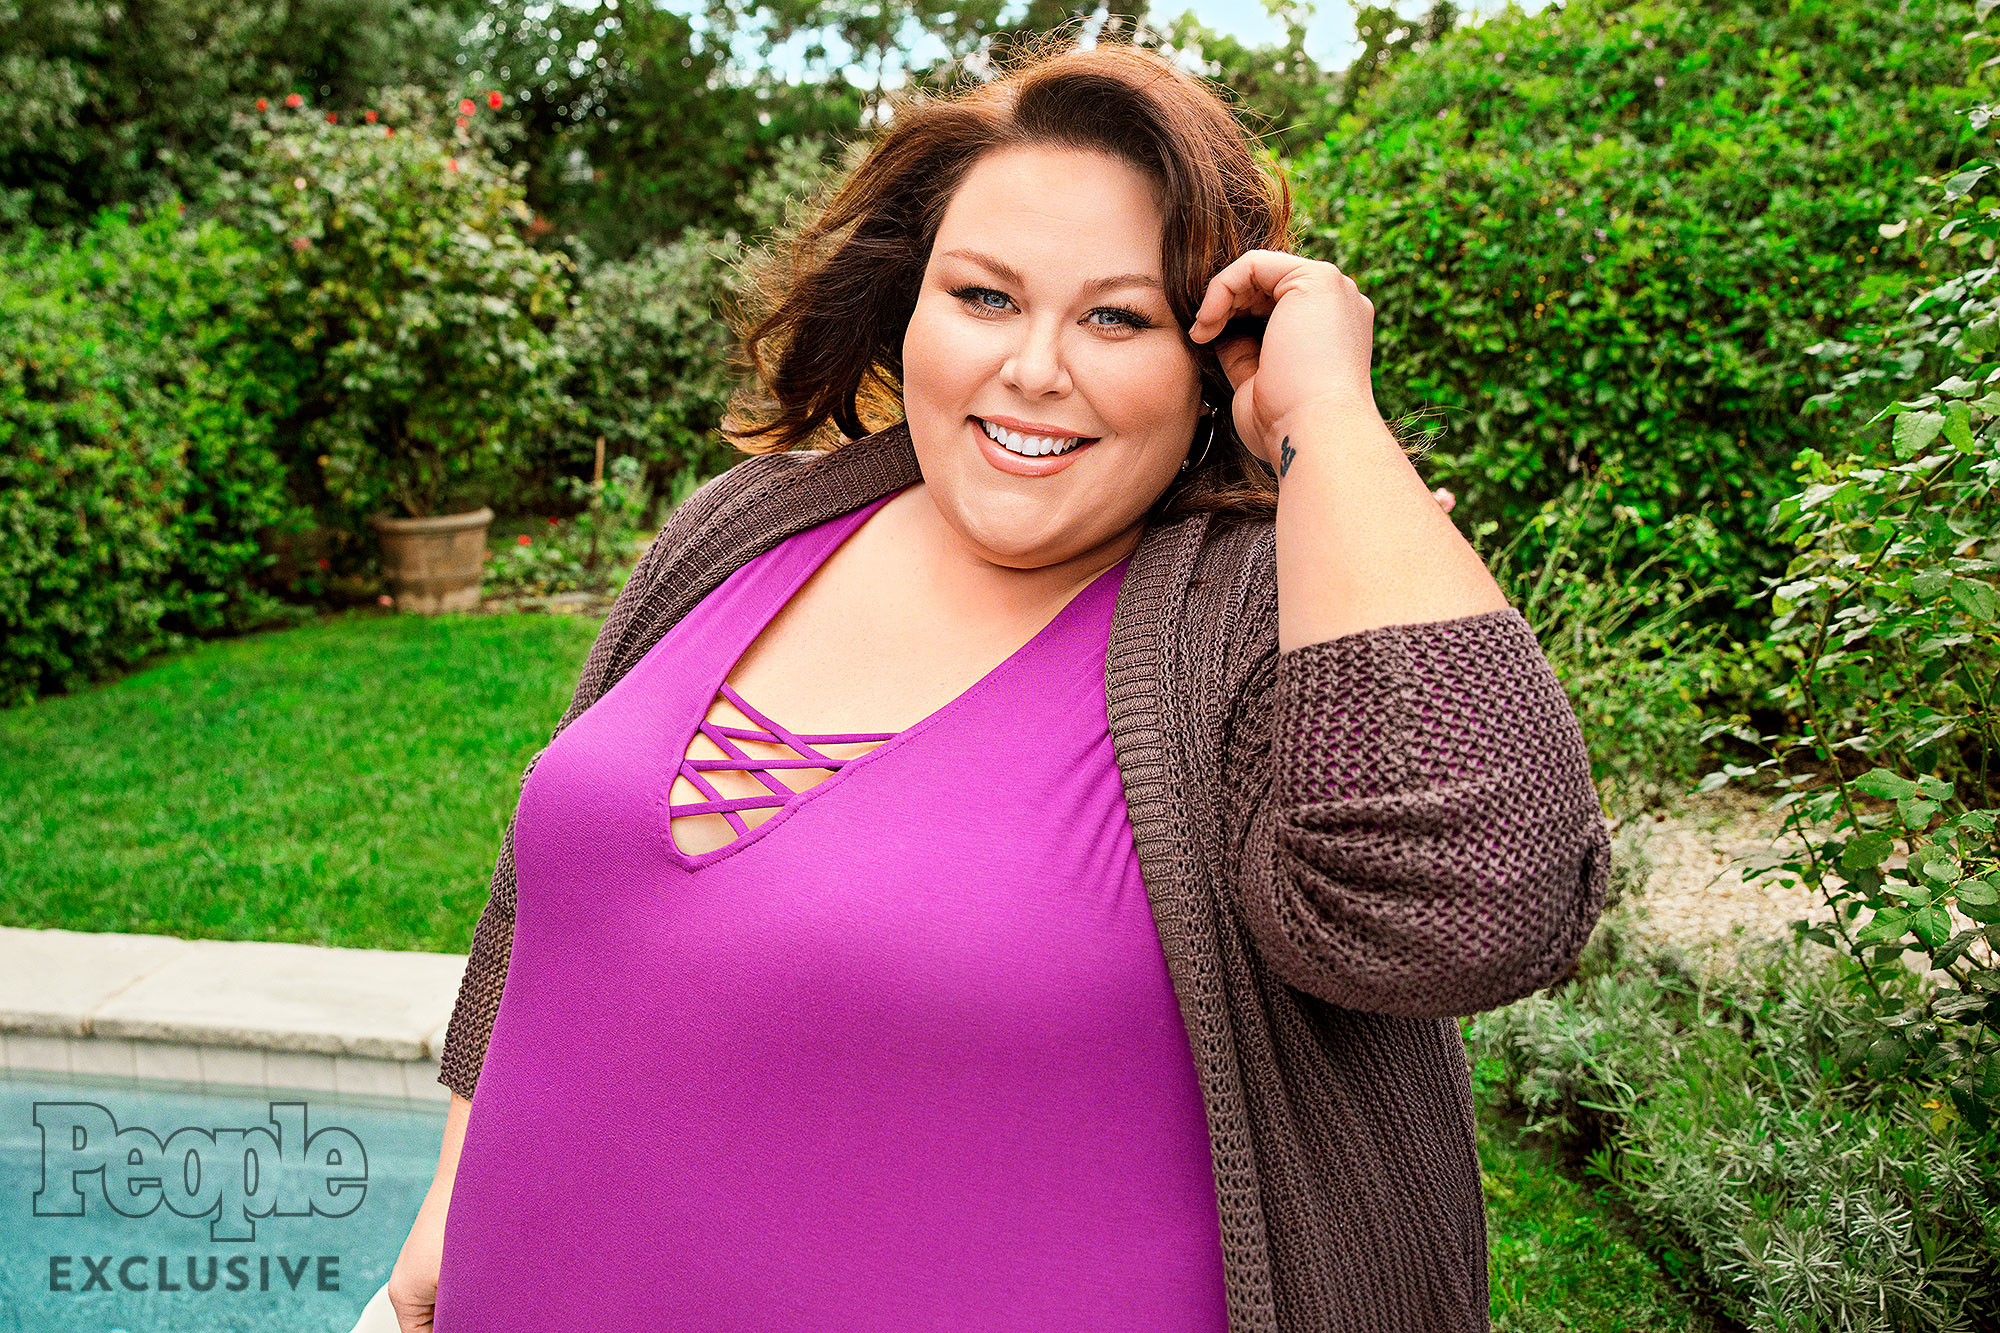 Chrissy Metz photographed in Los Angeles, CA, on January 13, 2017. THIS IS A HIGH RES RETOUCHED FILE Photographer: Jim Wright Hair: Stephanie Hobgood/Hot Tools Pro/Exclusive Artists Management Makeup: Motoko Honjo Clayton/NARS/MAC Stylist: Jordan Grossman Clothing Credits: Look 1 (in fuschia top): Sweater - Torrid Top - Lane Bryant Jeans - Lane Bryant Boots - Avenue Earrings - Rebecca Minkoff Look 2 (in green dress): Dress - Torrid Tights - Lane Bryant Earrings - Charlie Lapson Look 3 (grey striped sweater): Sweater - Lane Bryant Jeans - Torrid Earrings - Charlie Lapson